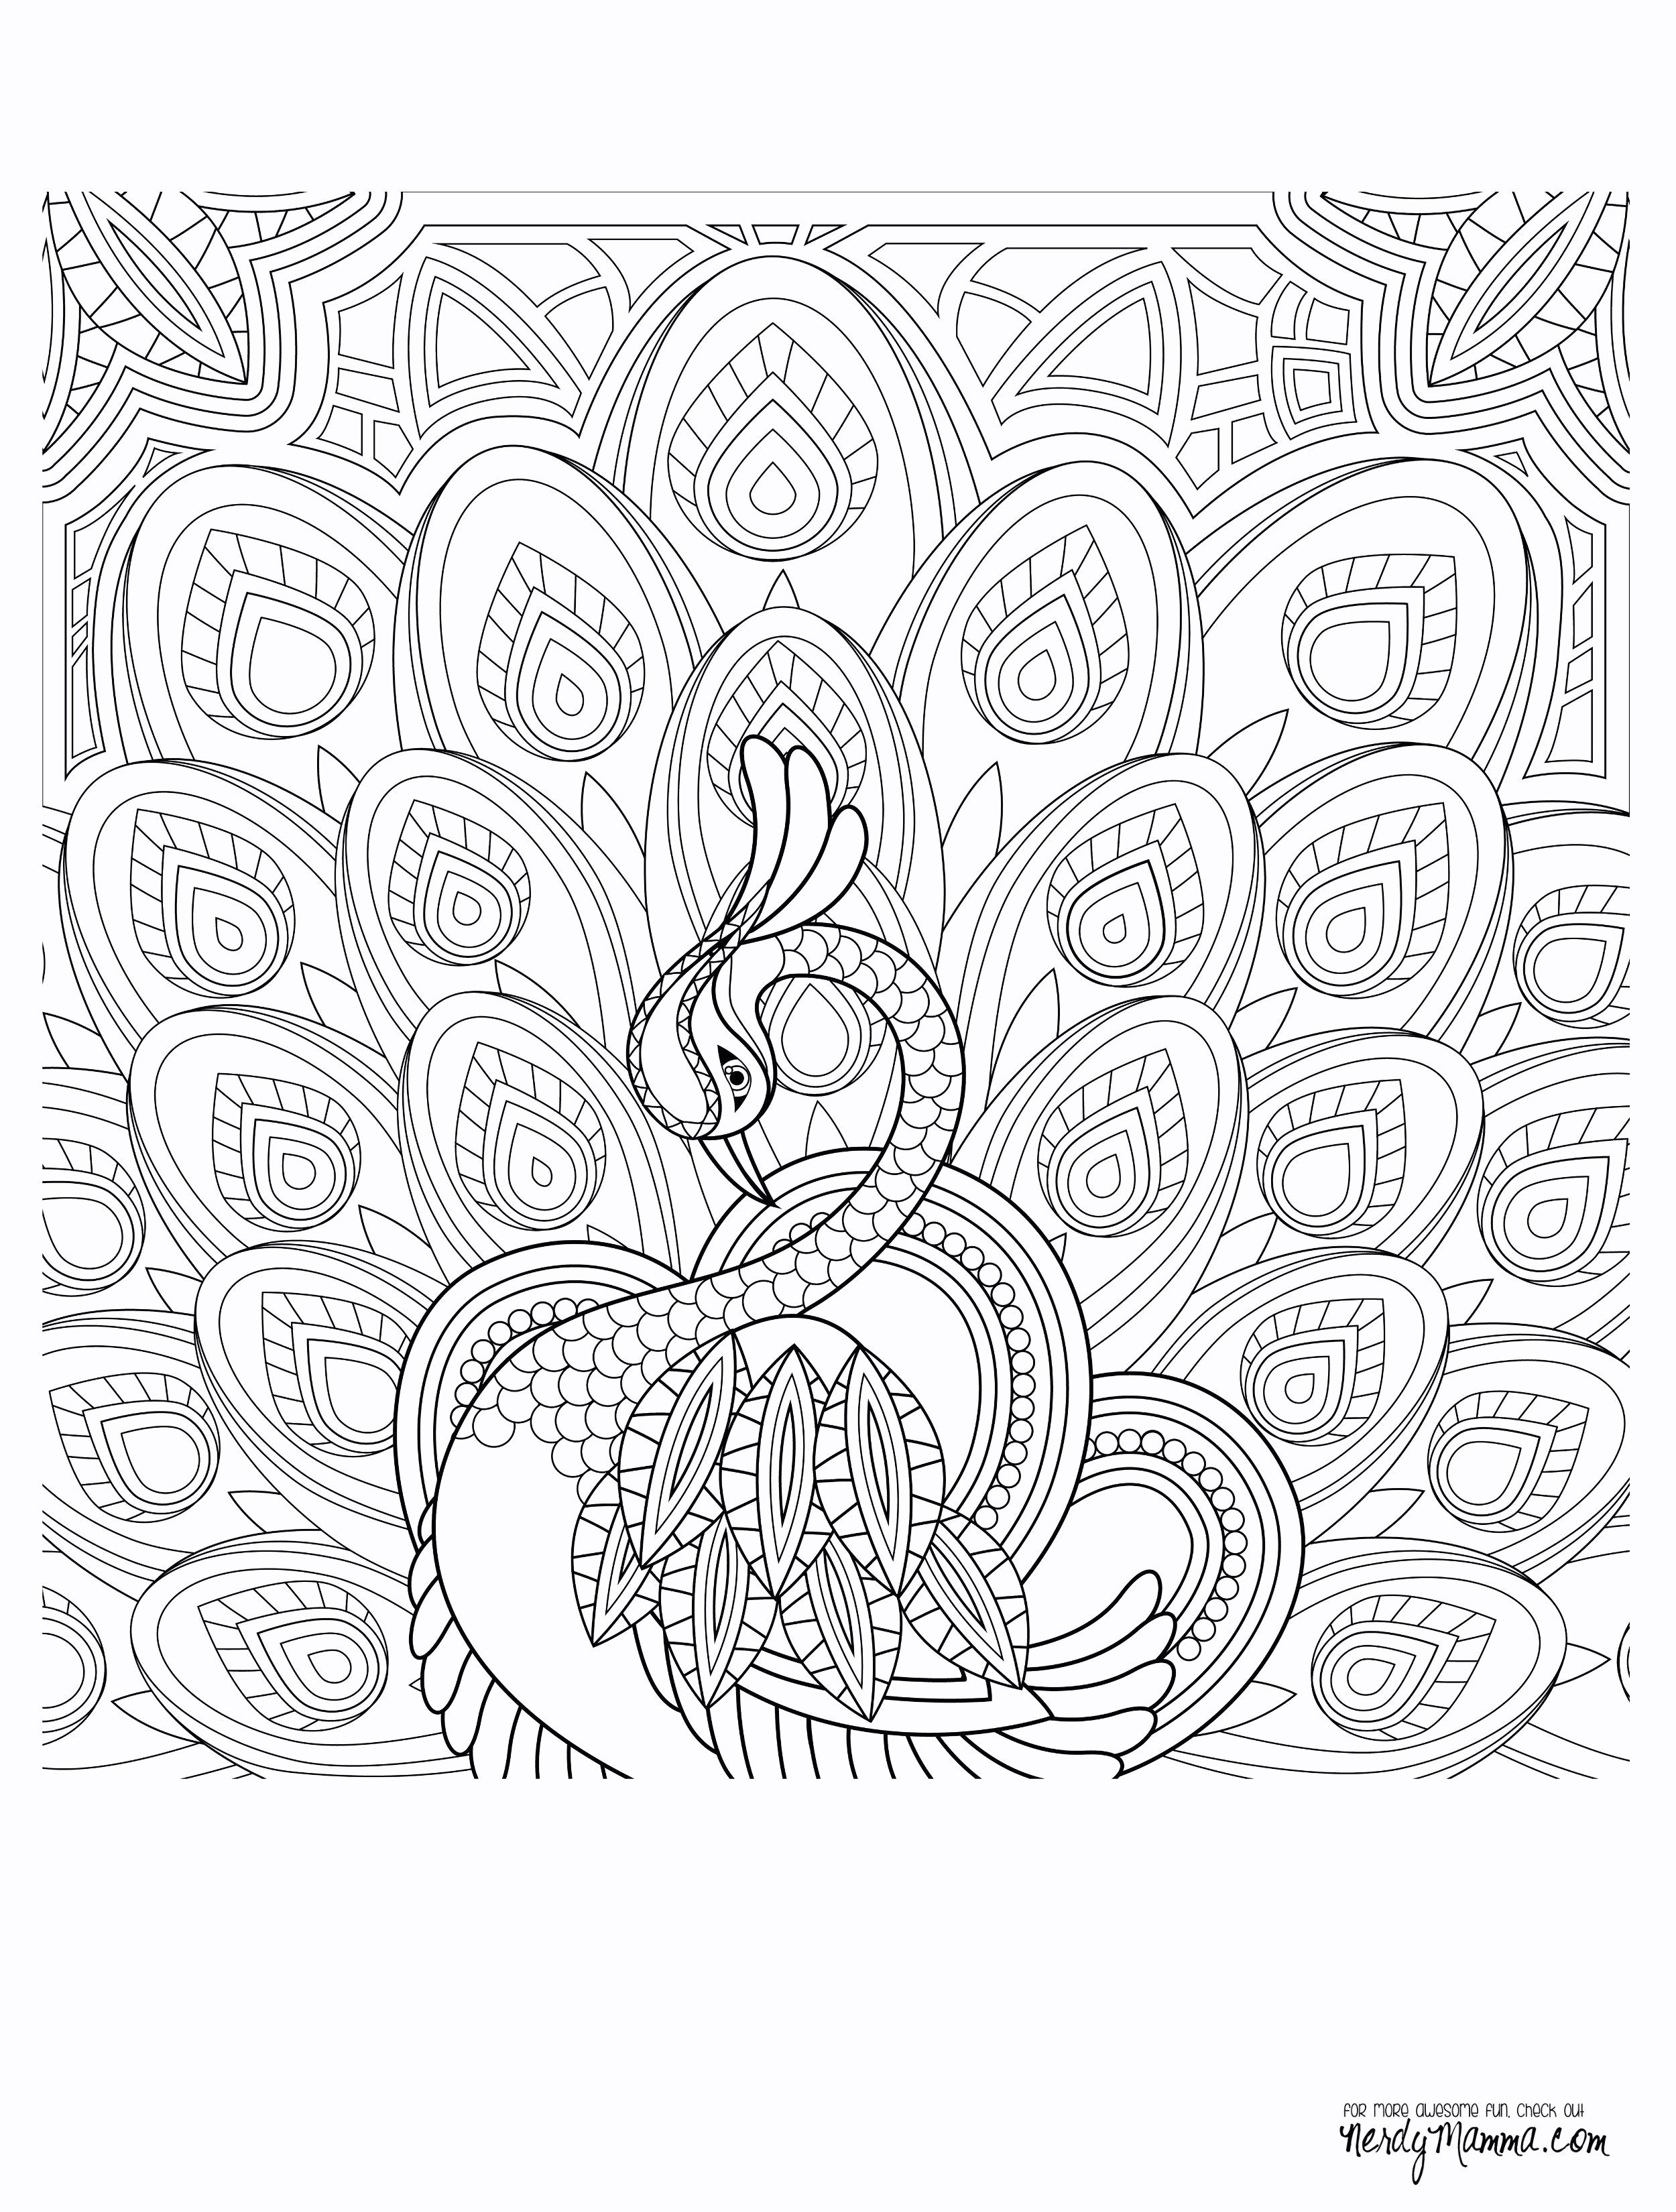 26 Nurses Week Coloring Pages Download - Coloring Sheets